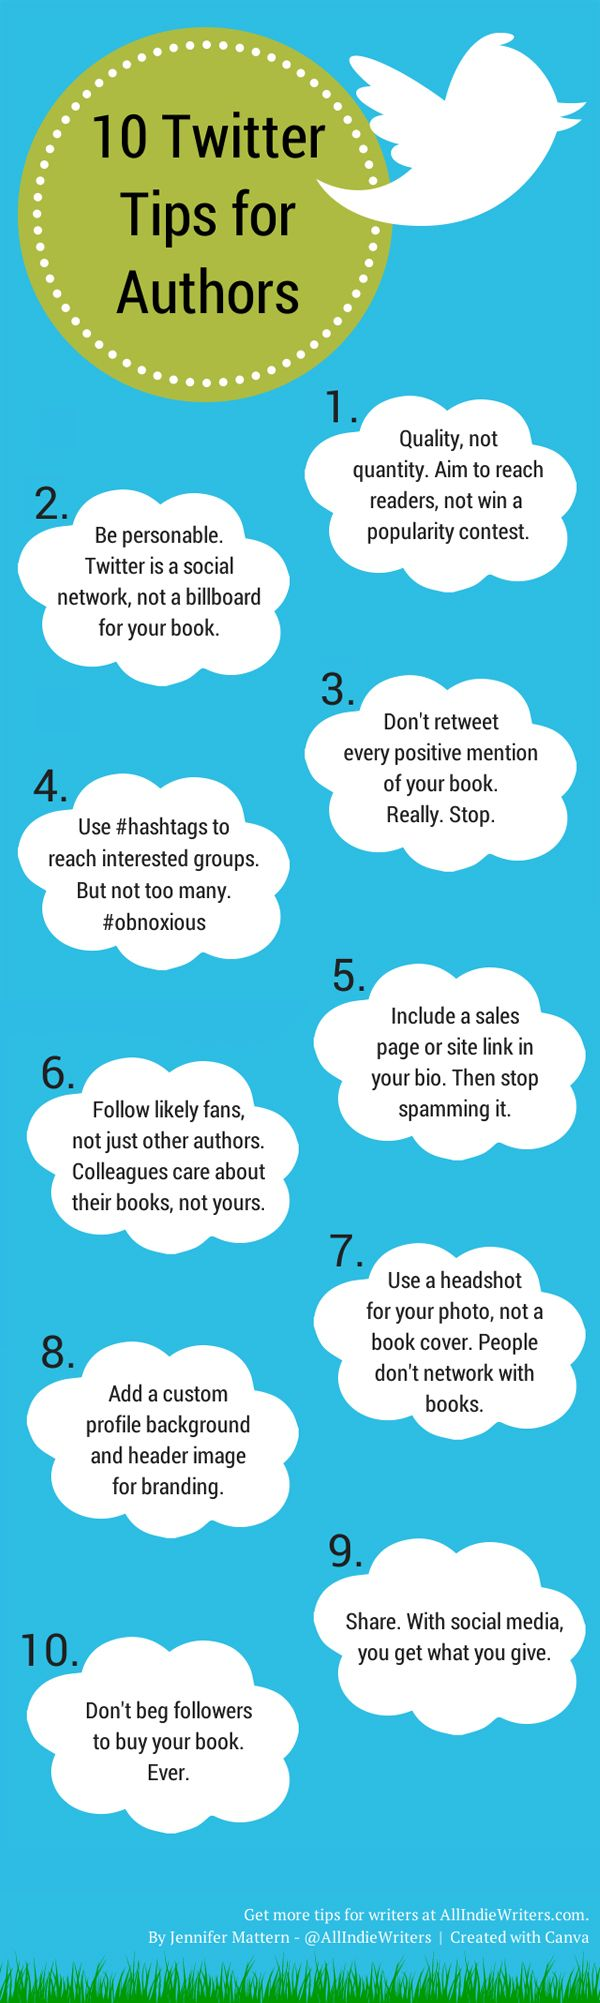 10 Twitter Tips for Authors (Infographic)